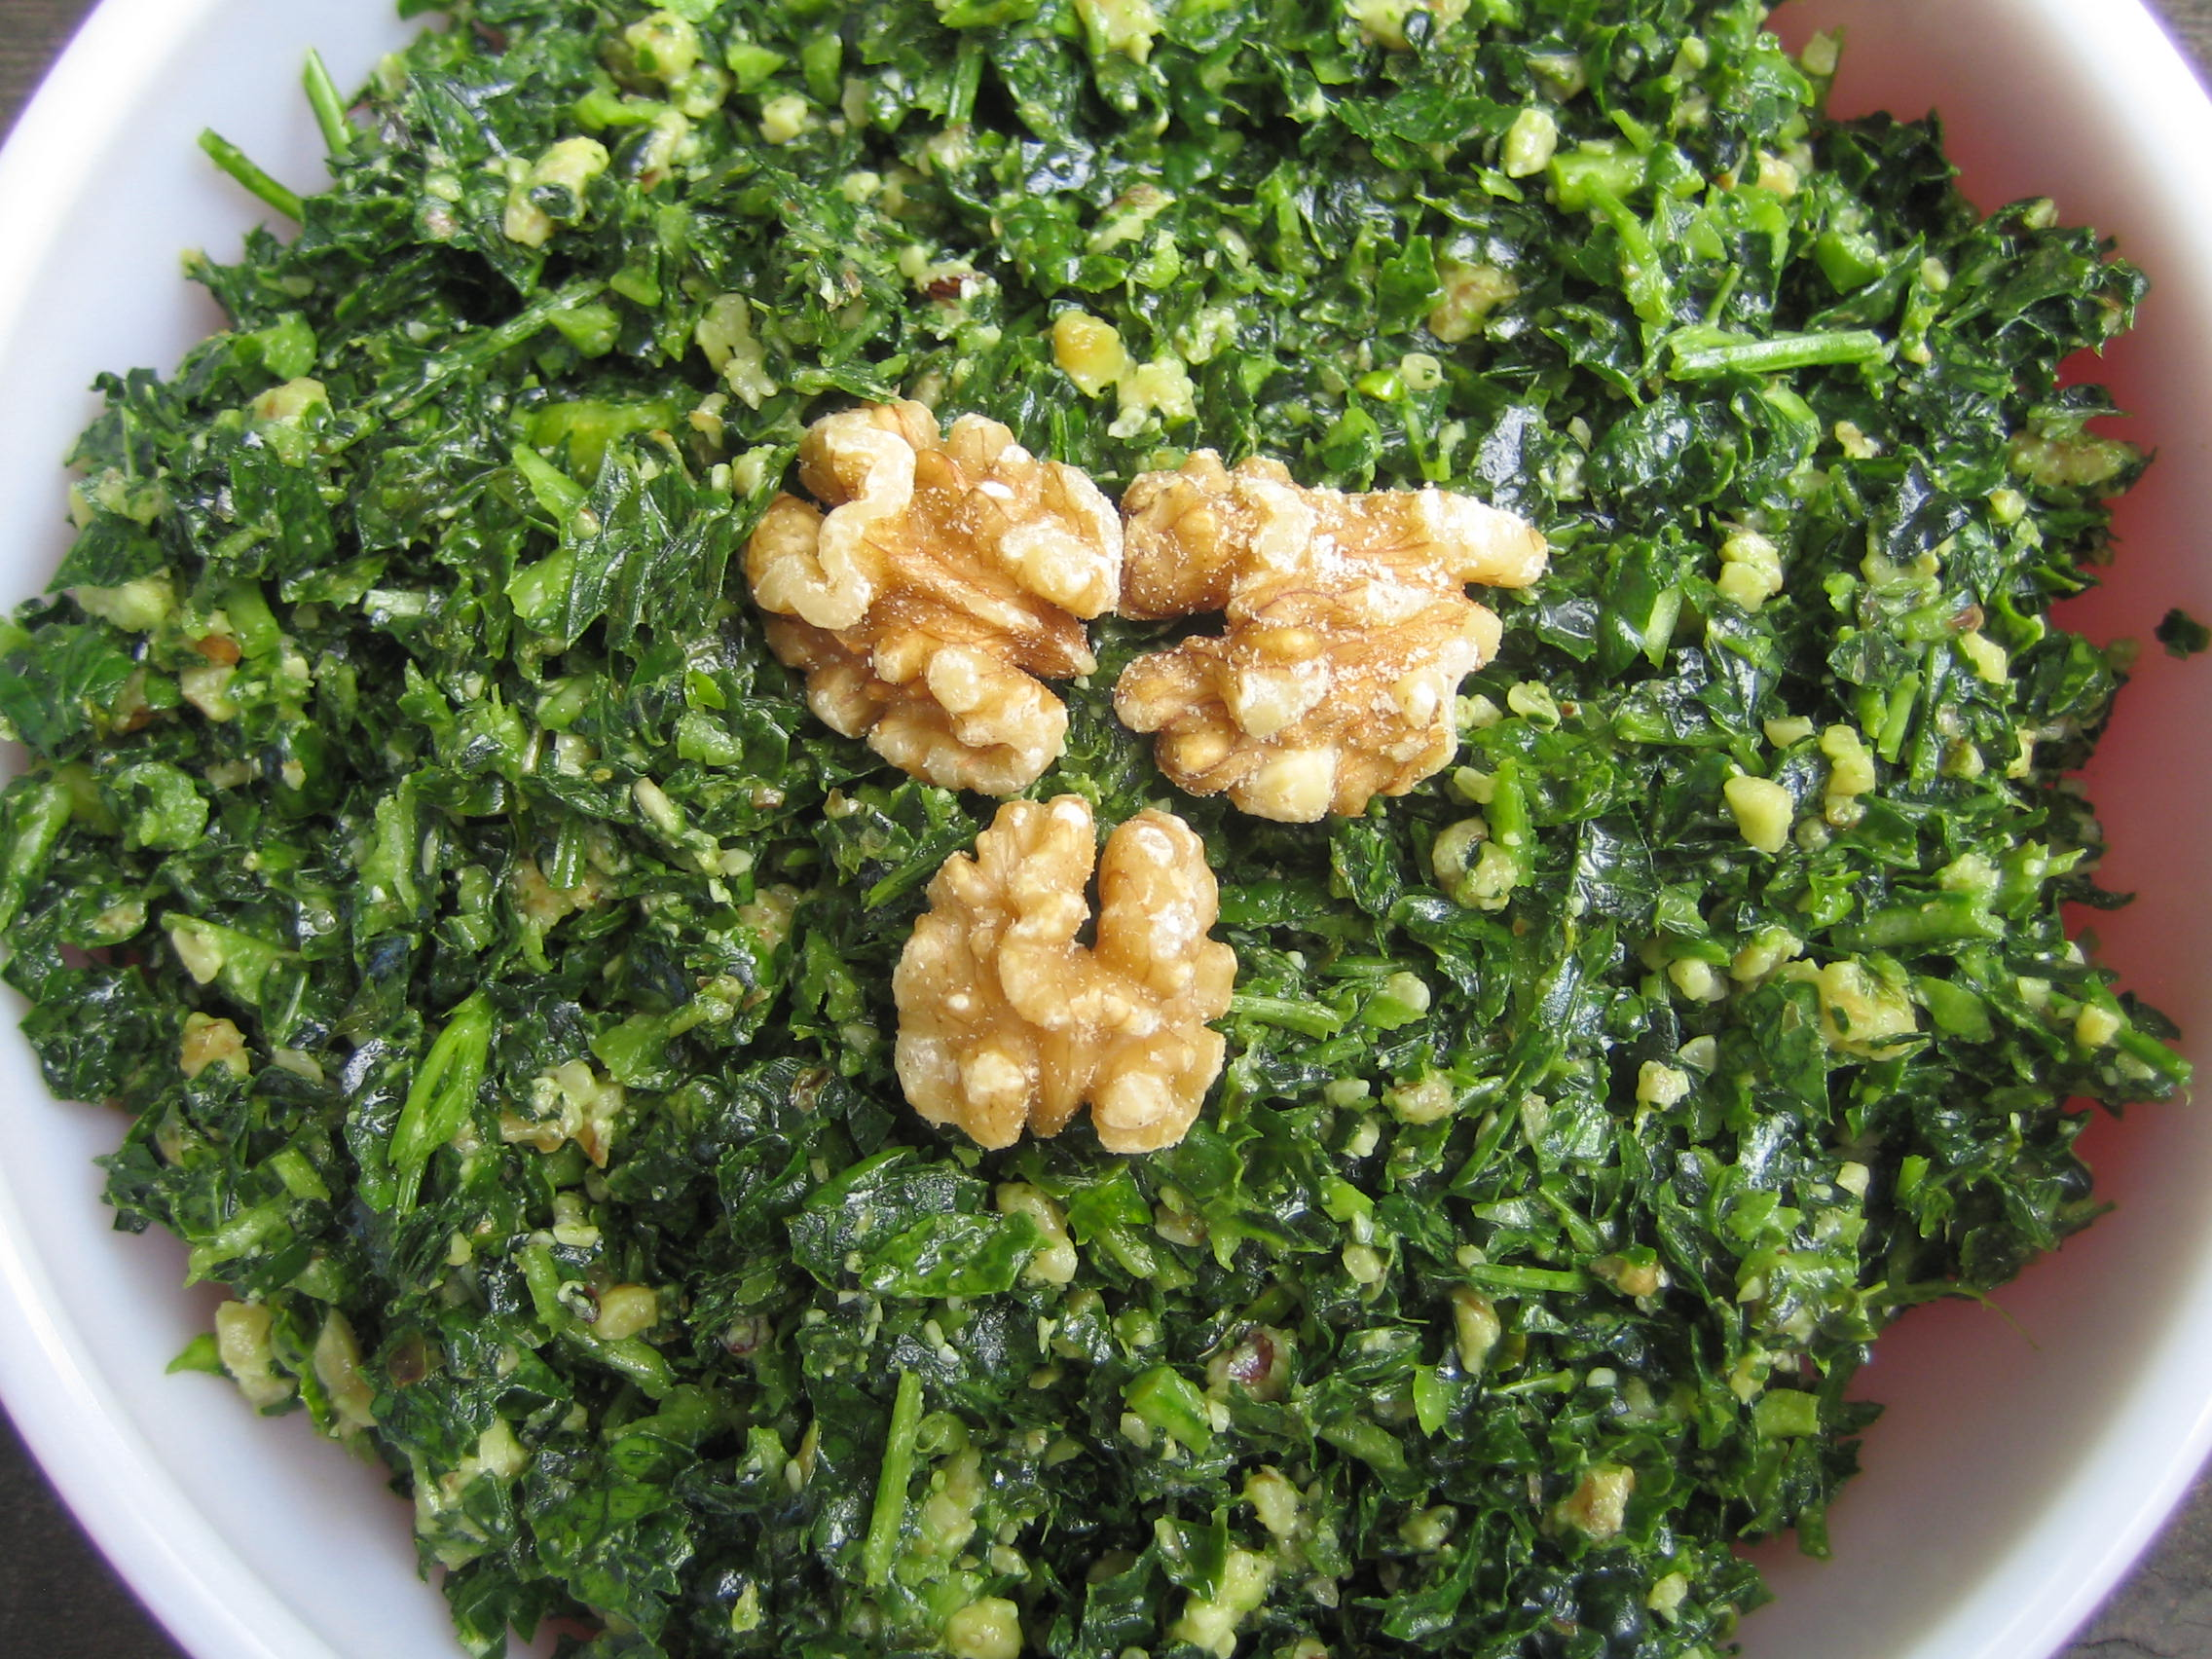 Kale and Herb Salad